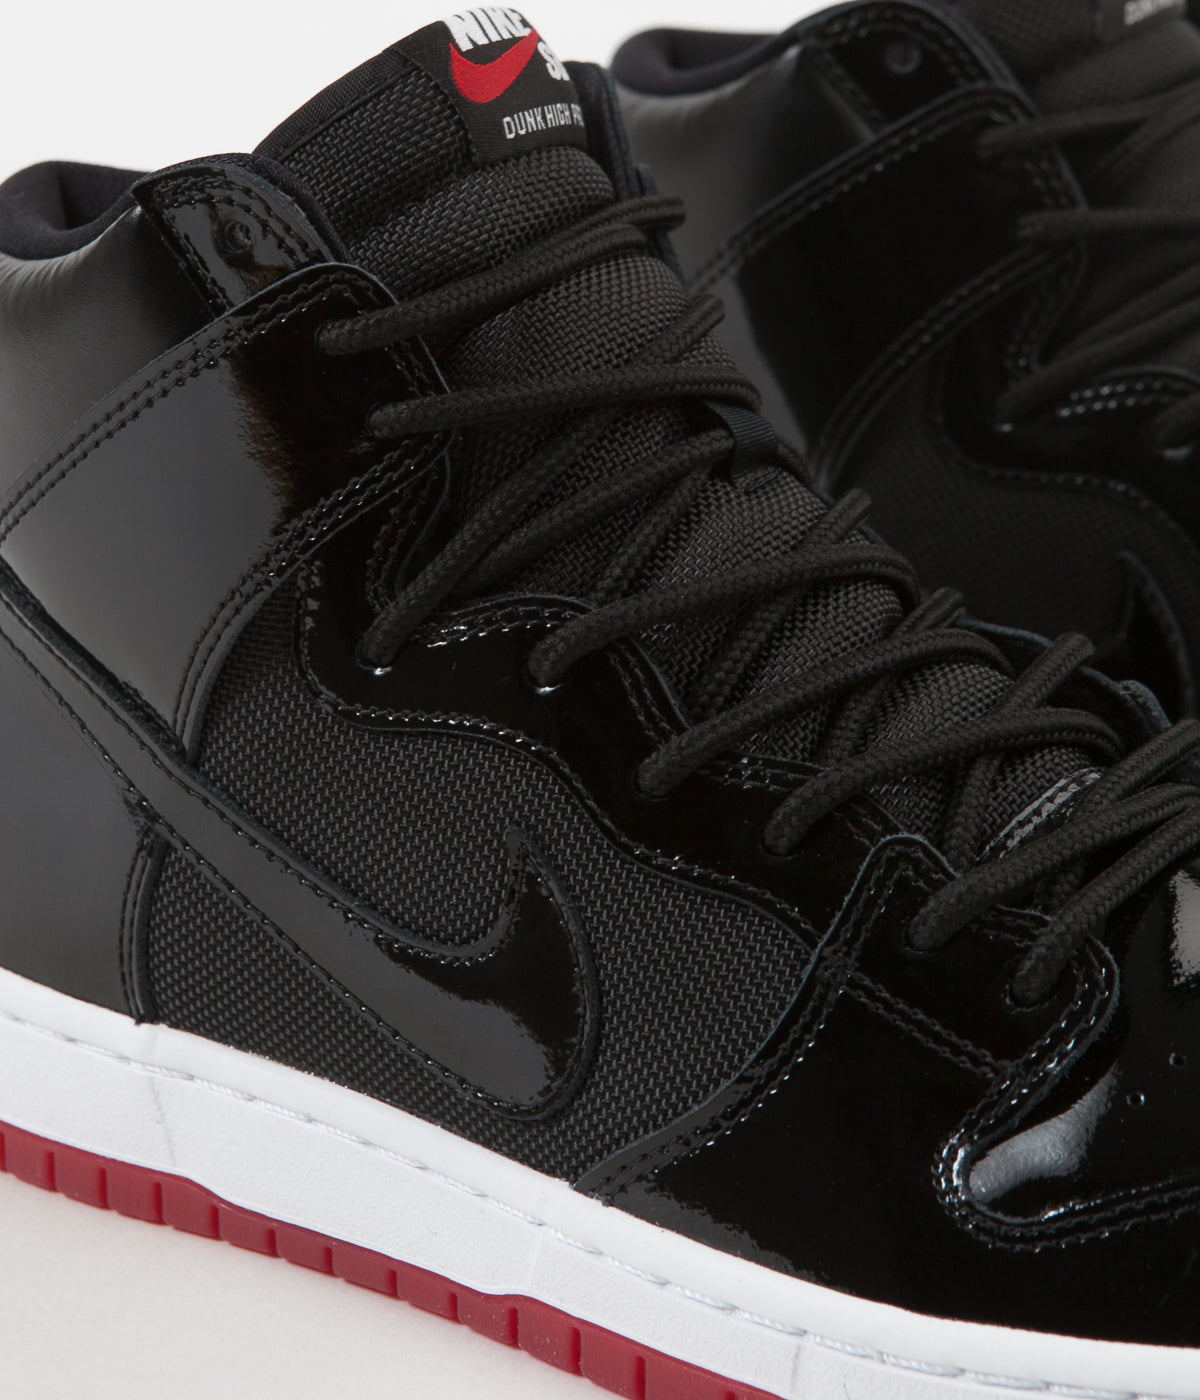 0f158b07ce ... Nike SB Dunk High TR Shoes - Black   Black - White - Varsity Red ...